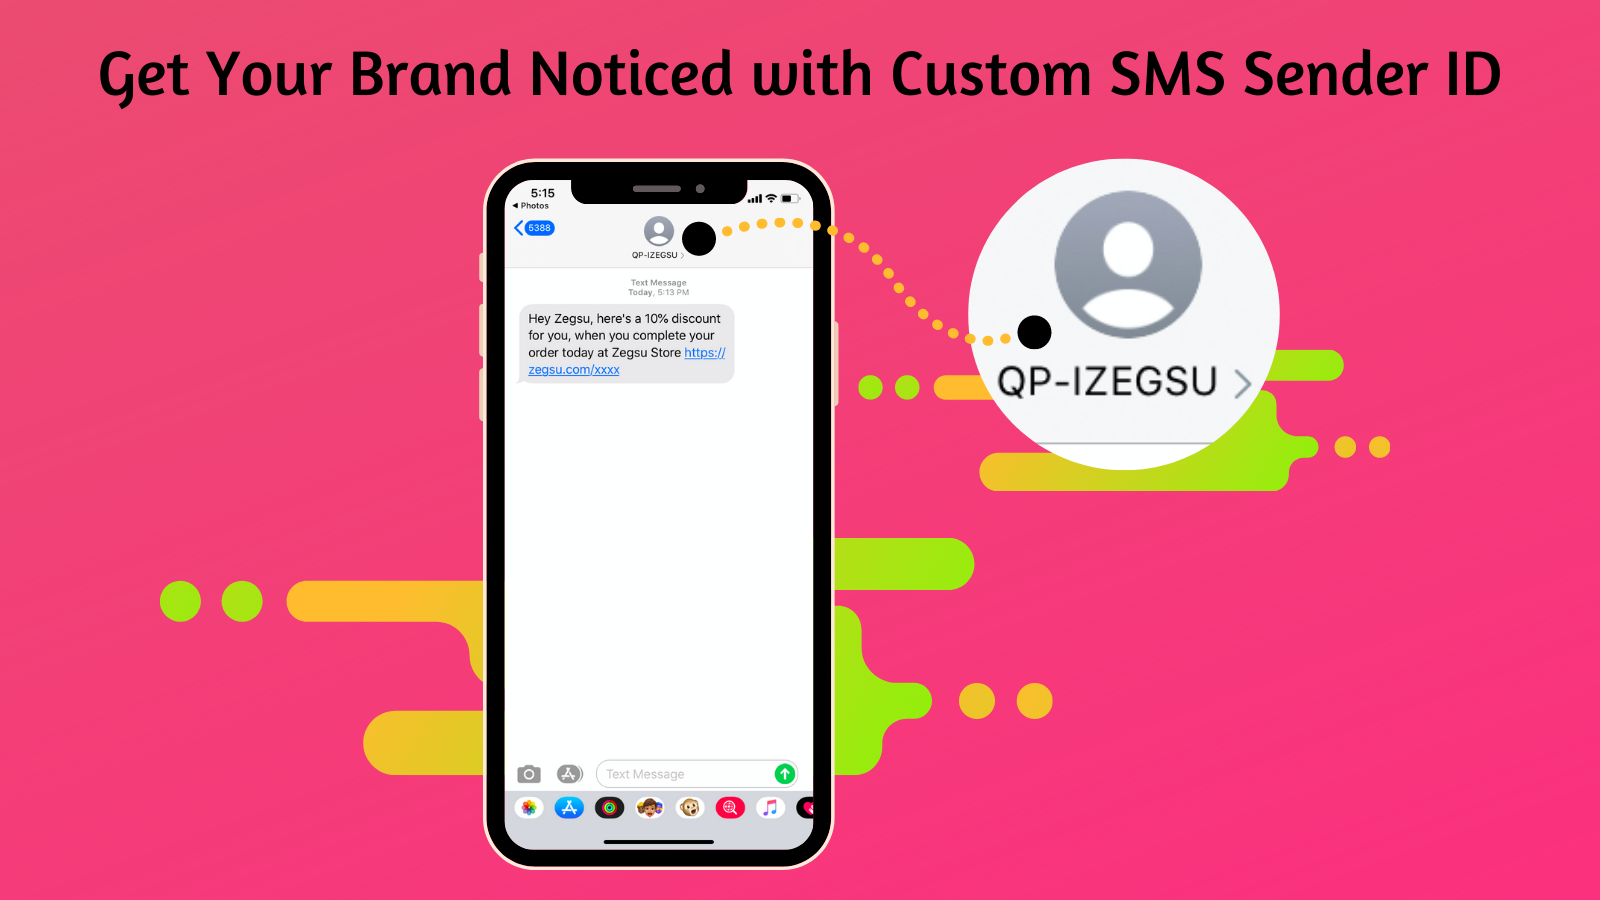 Custom SMS sender ID for abandonment protector SMS reminders